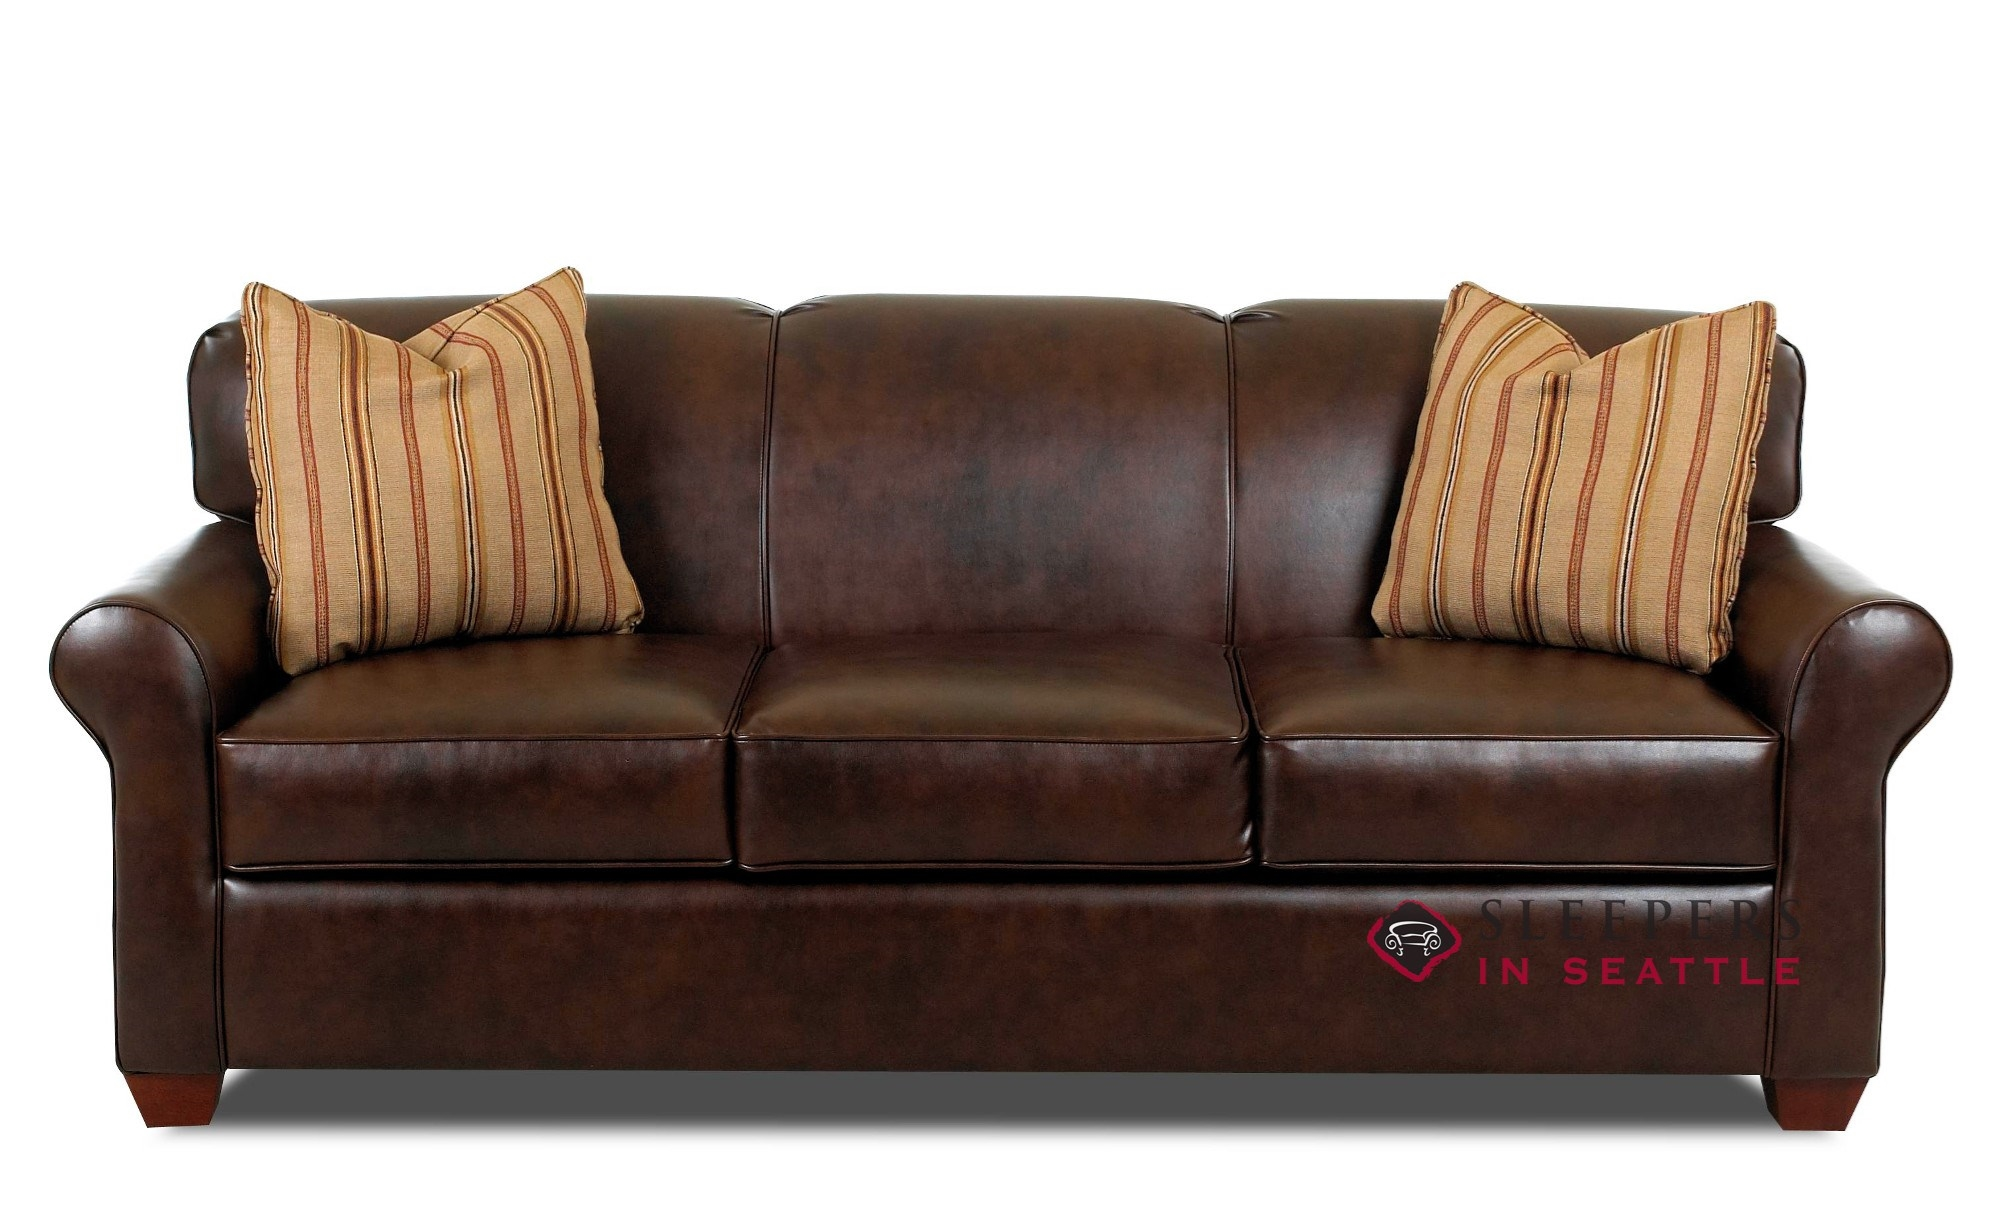 Couches Sleeper Savvy Calgary Leather Queen Sleeper Sofa